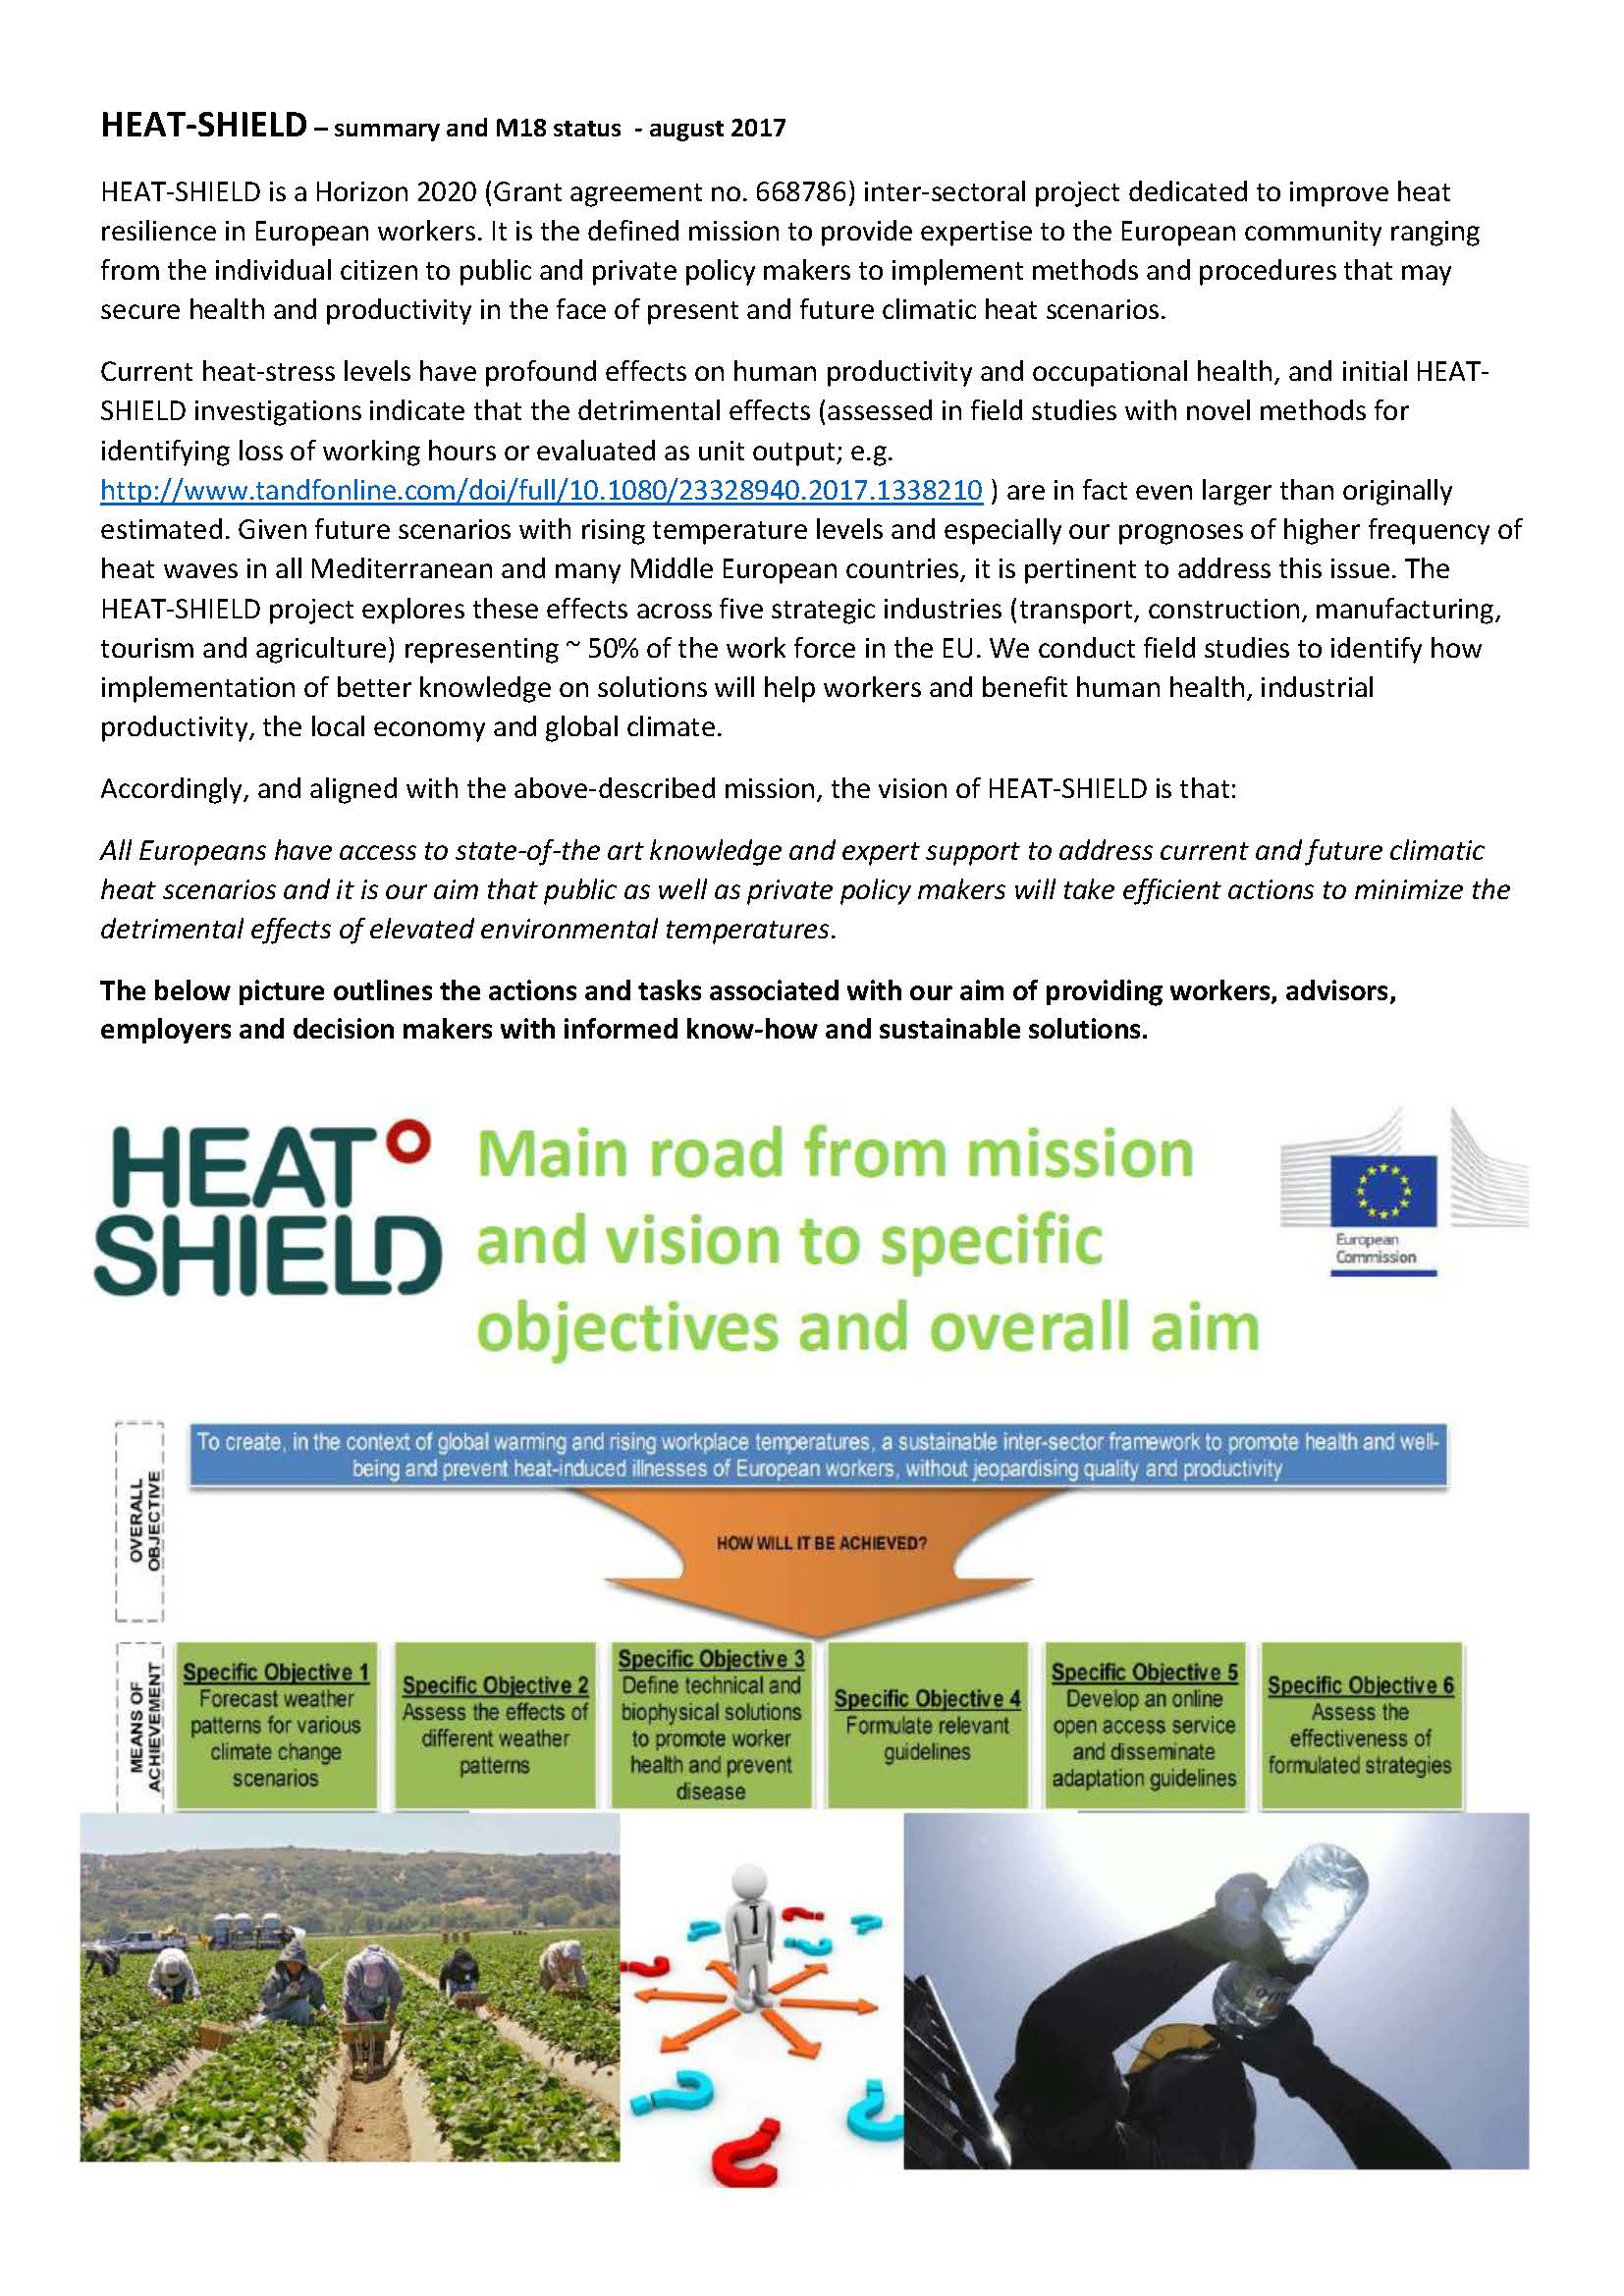 Integrated inter-sector framework to increase the thermal resilience